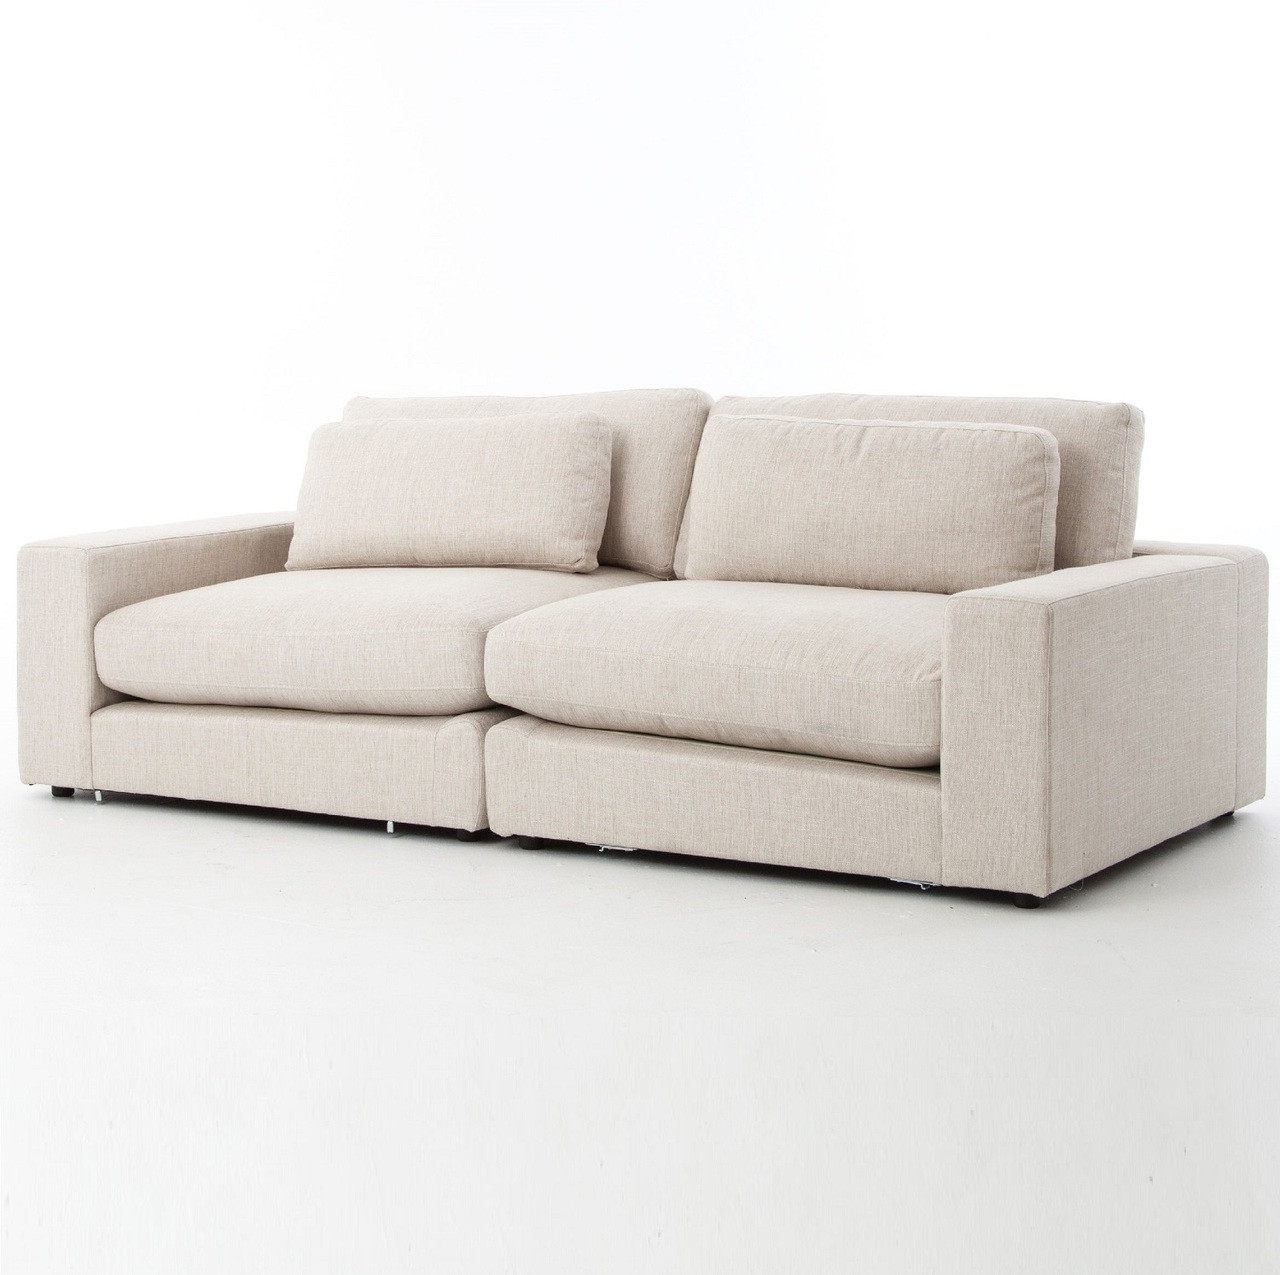 Bloor Beige Upholstered Contemporary 2 Seater Sofa 92